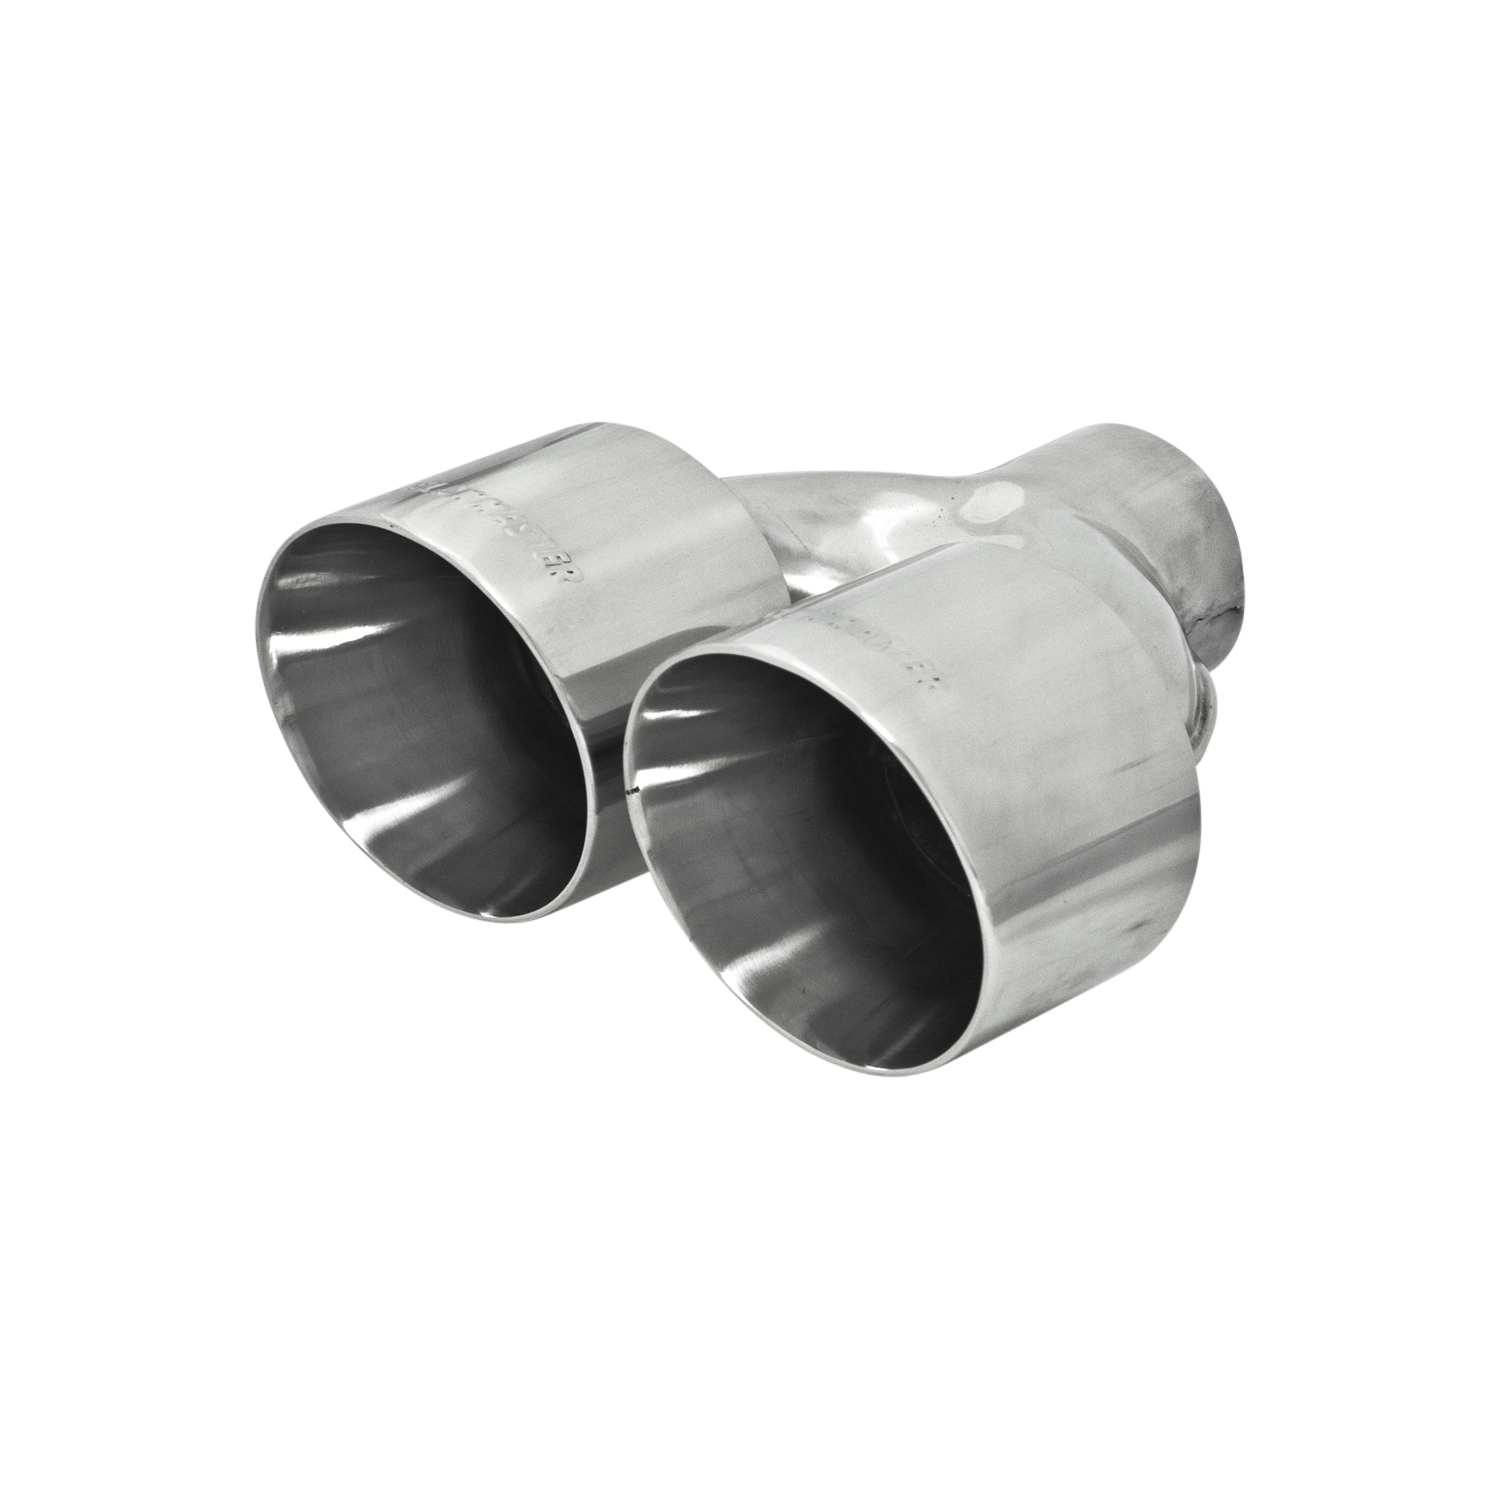 flowmaster 15391 exhaust tail pipe tip 2 1 2 inch inlet 4 inch dual outlet stainless steel round angled cut double wall edge 10 inch length